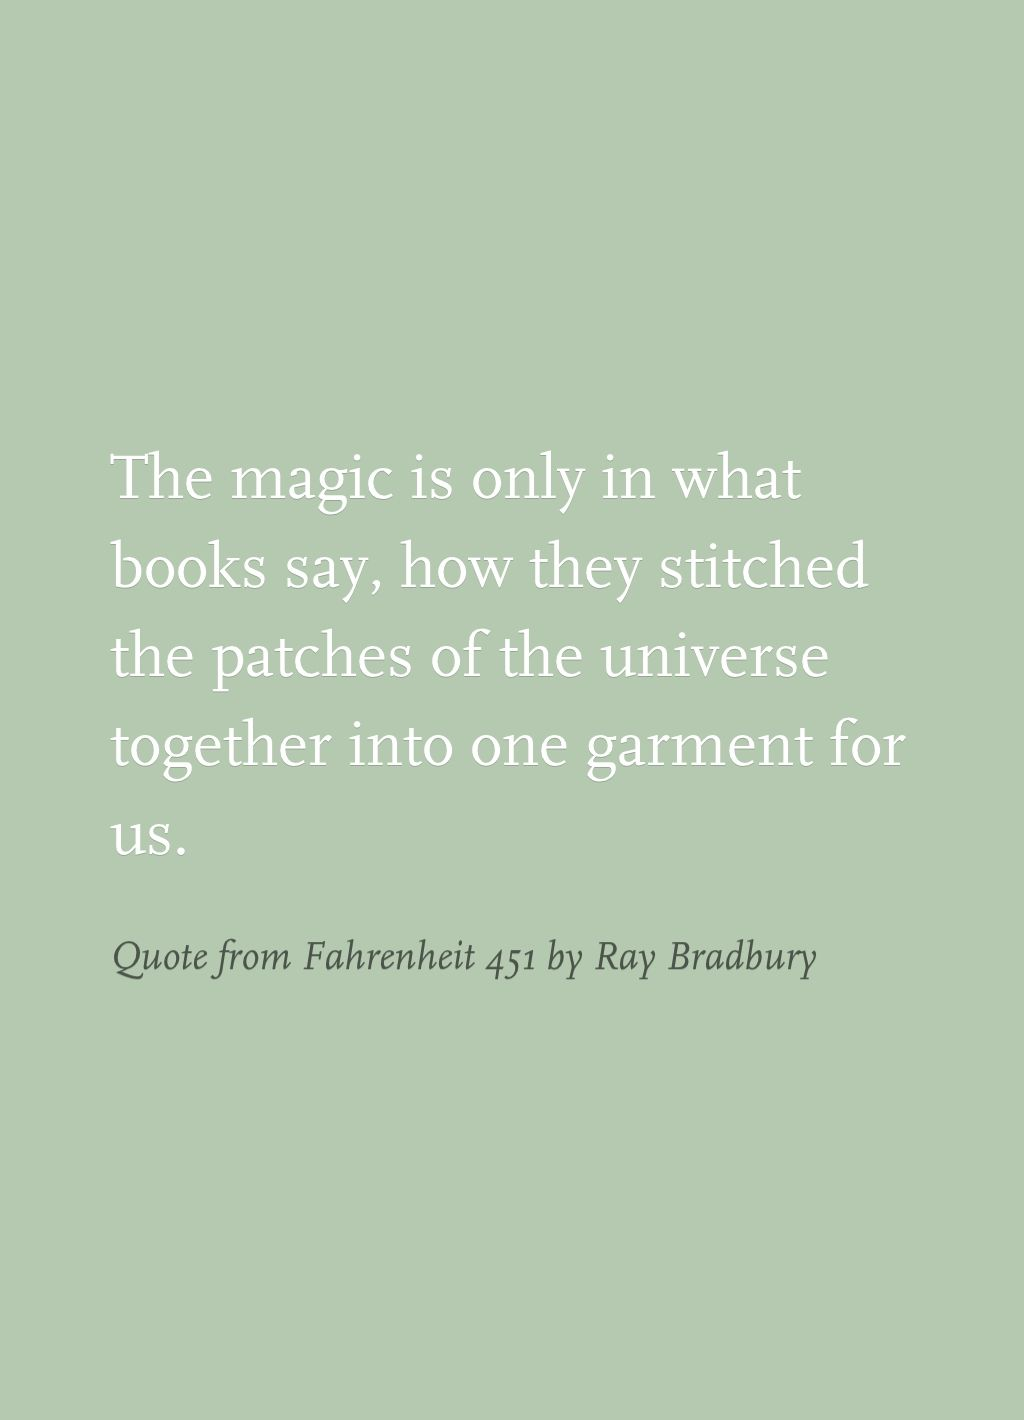 Fahrenheit 451 Quotes About Books Quote From Fahrenheit 451Ray Bradbury  Creative Writing